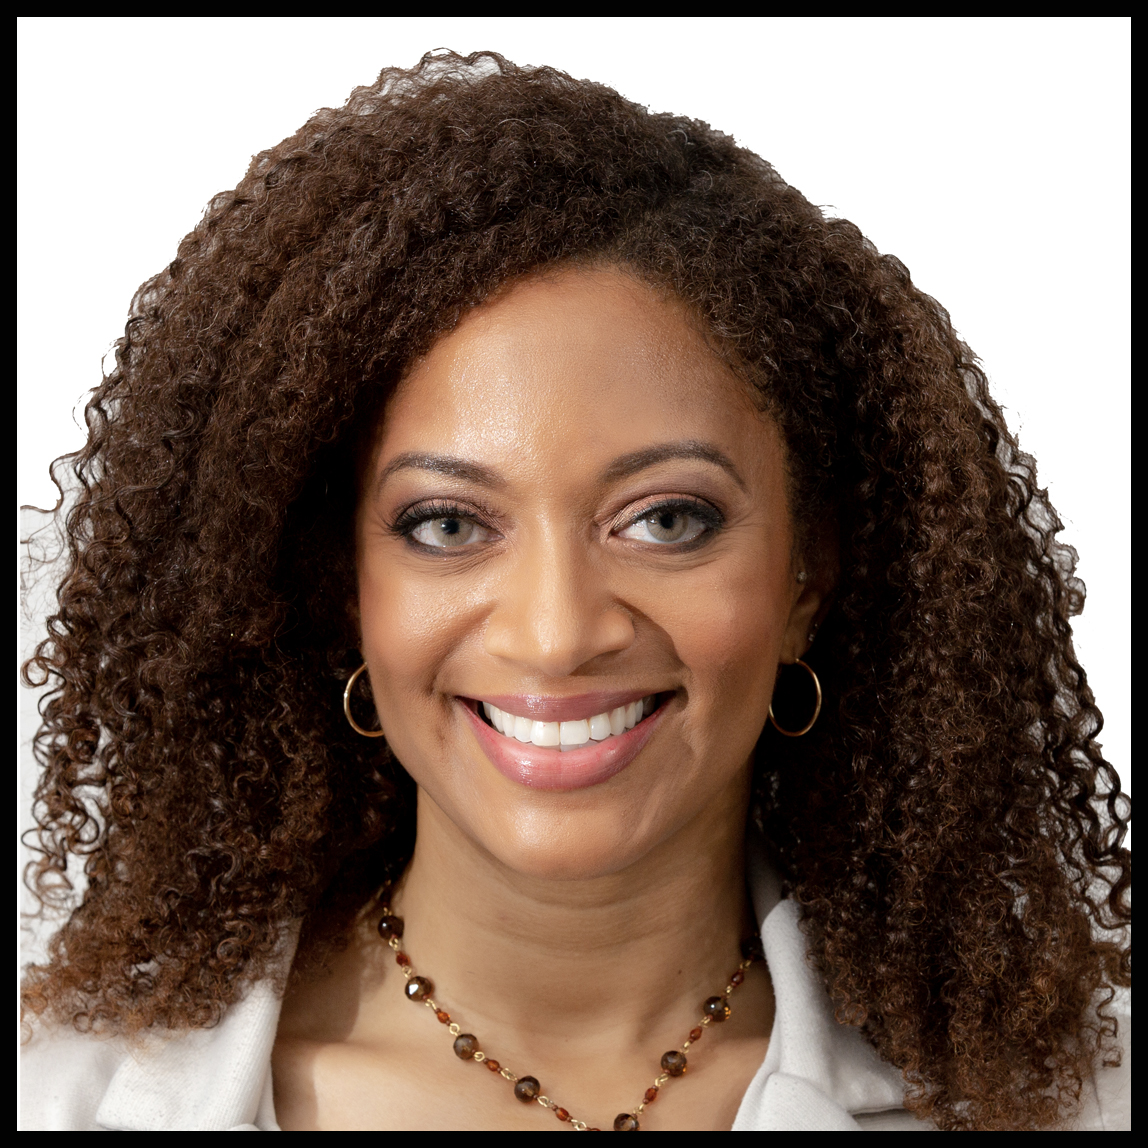 Dr. Crystal Andrea Riley  Age: 38 Category: Health Location: Cheltenham